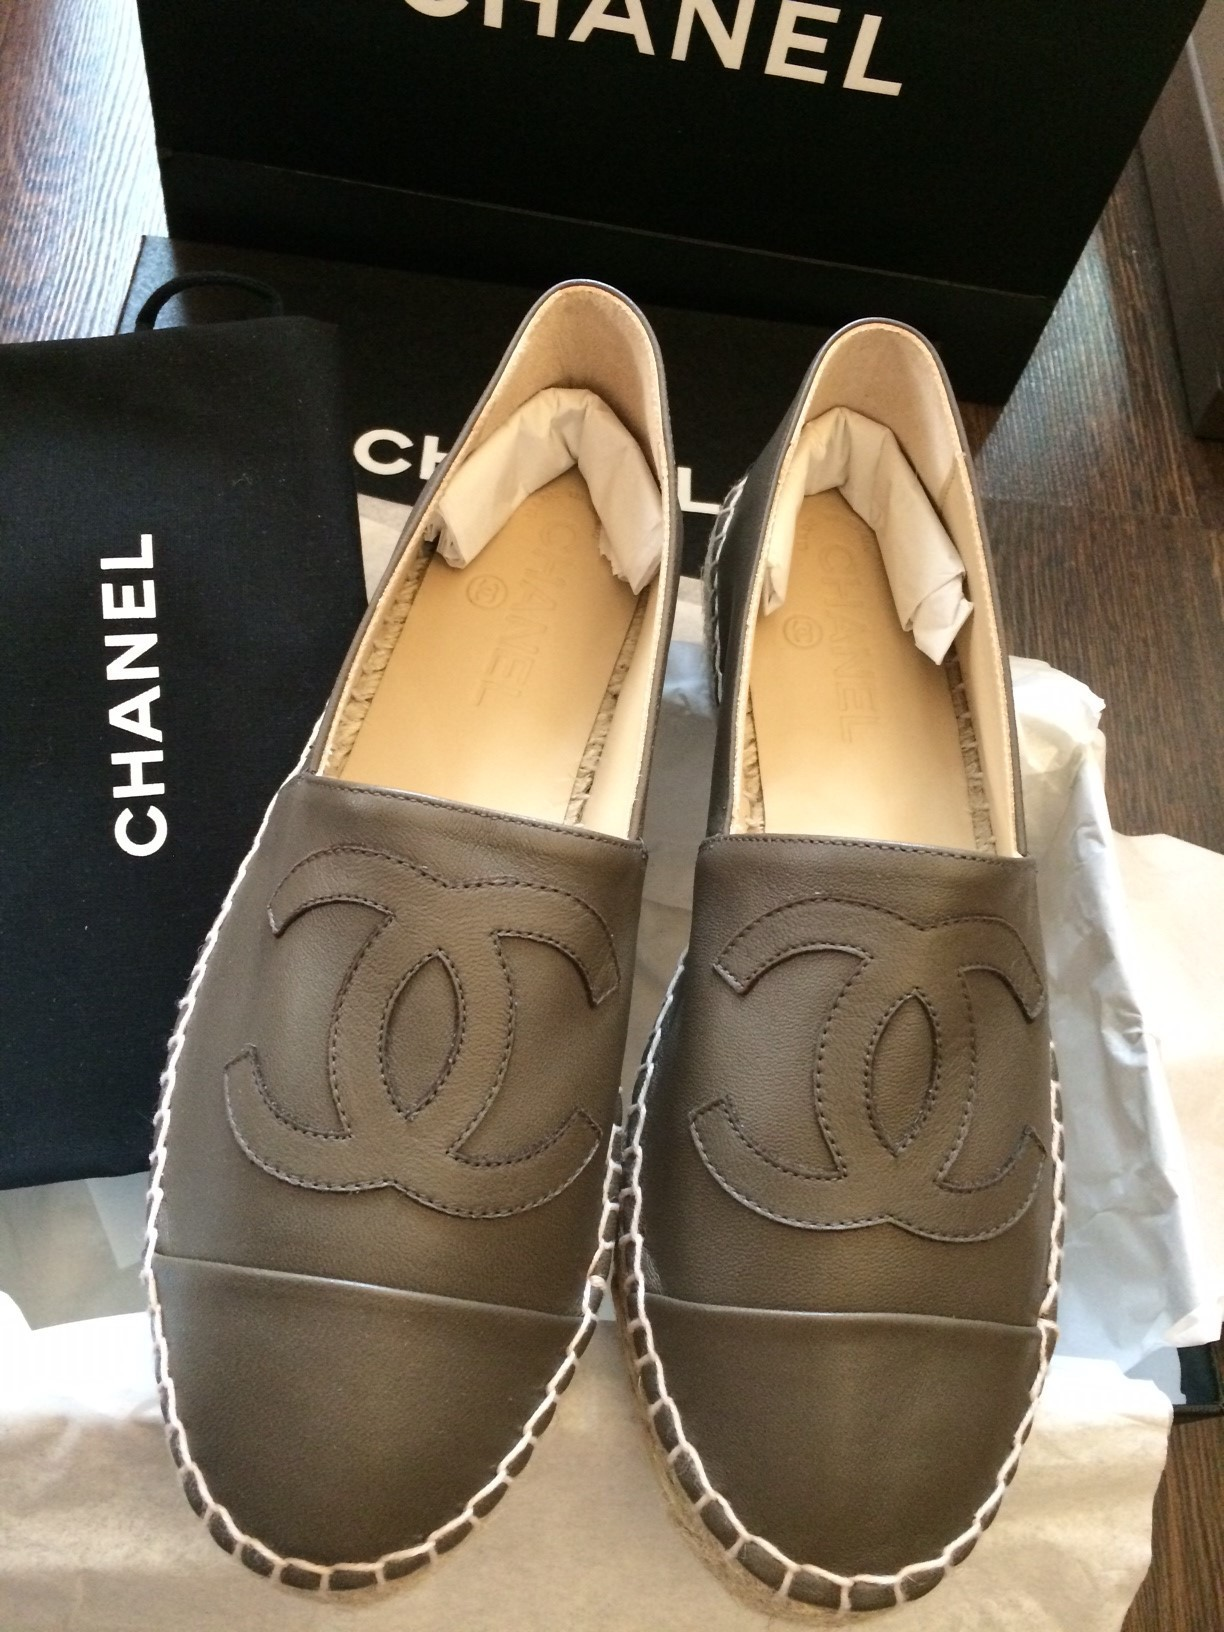 shop karl lagerfeld chanel